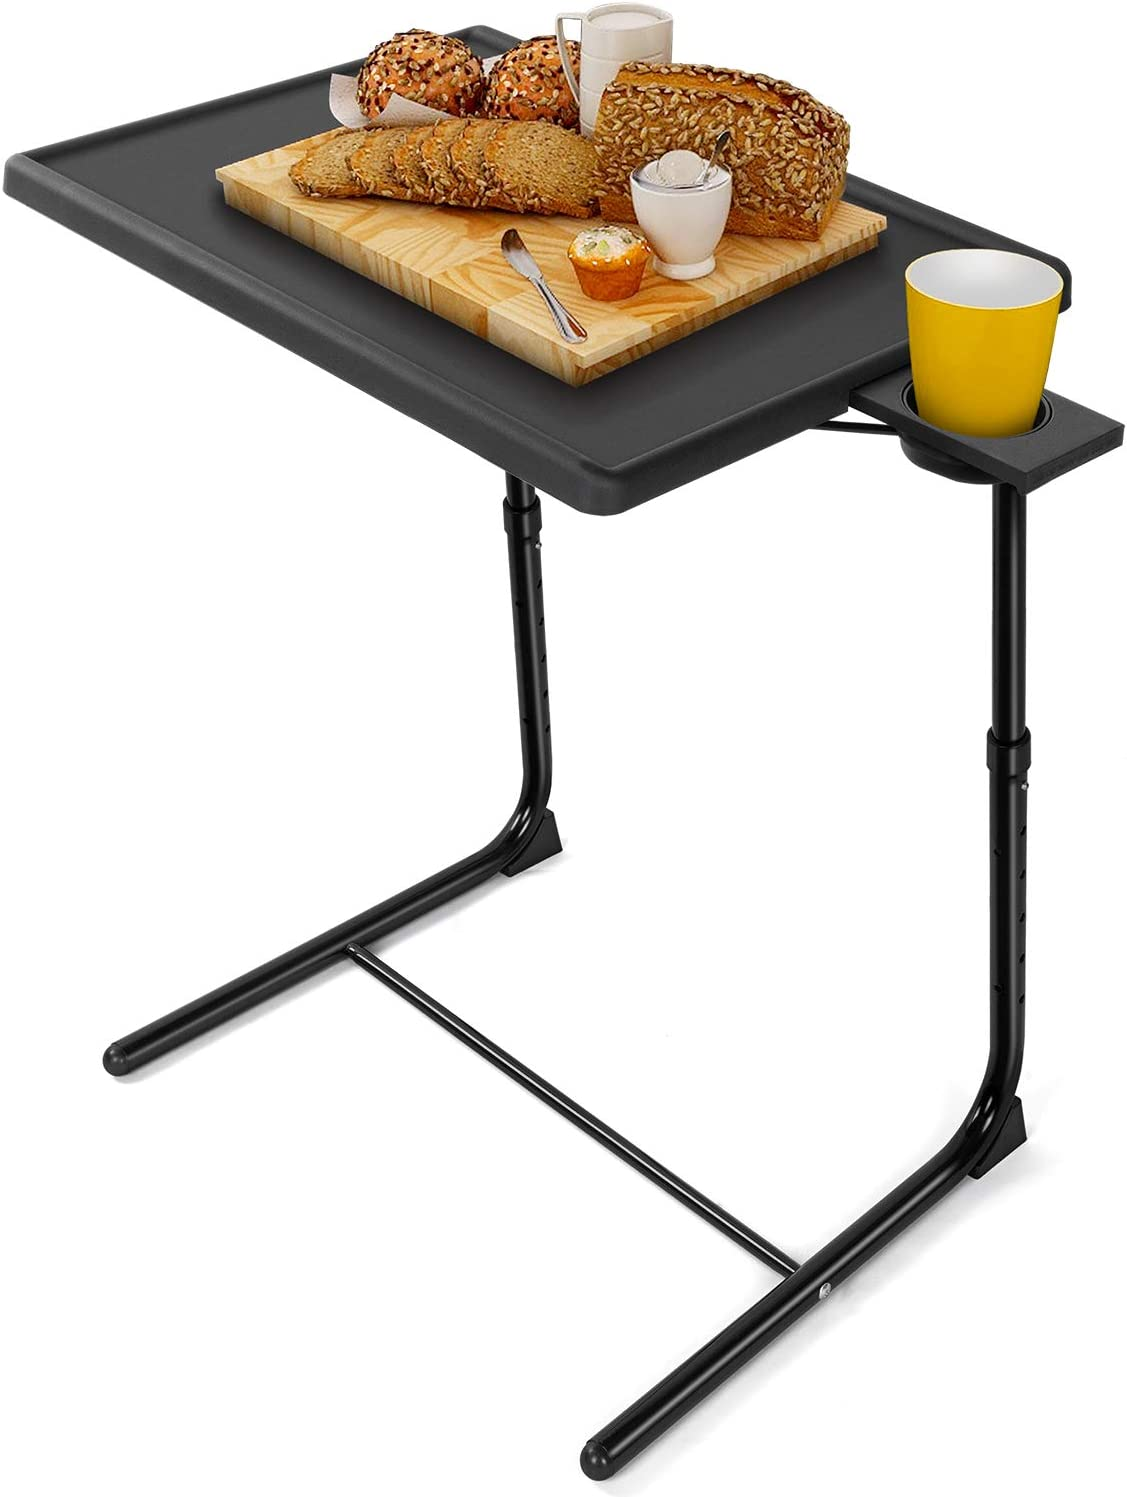 LORYERGO TV Tray Table - Adjustable TV Dinner Tray Tables with 6 Height & 3 Tilt Angle, Folding TV Trays with Cup Holder for Bed & Sofa, Multifunctional TV Table Tray for Eating & Reading